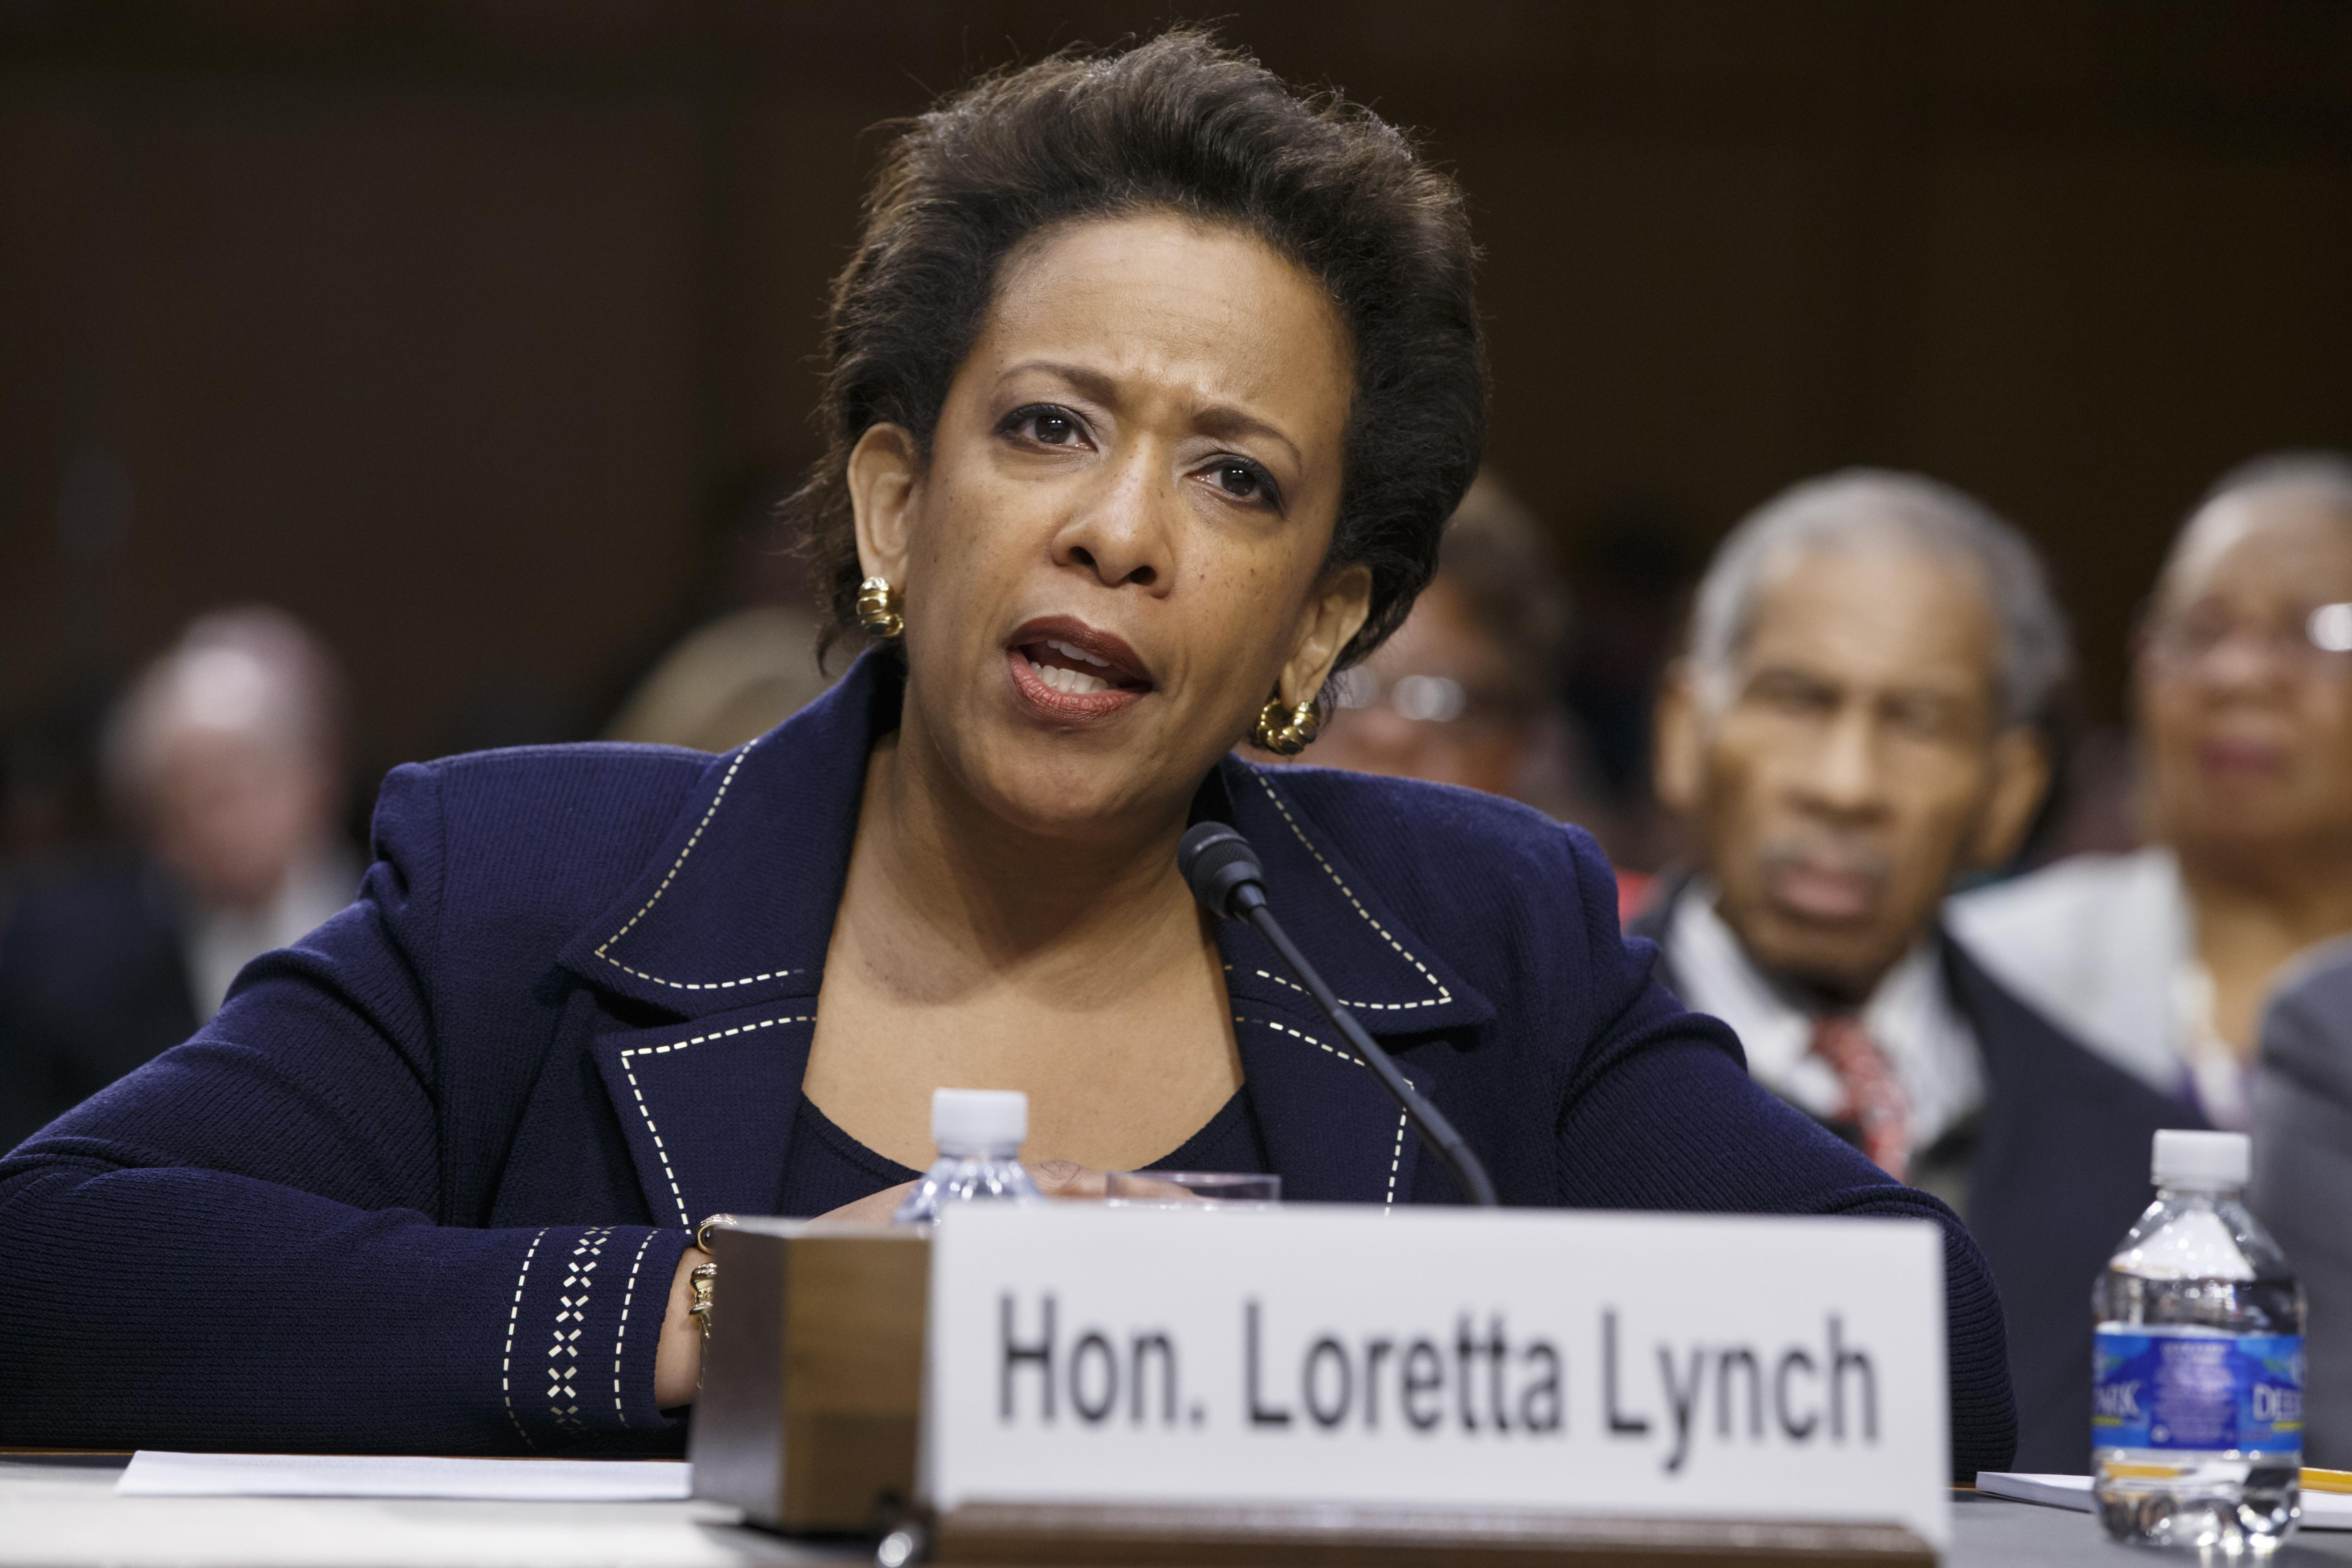 loretta lynch s hard line stance on marijuana is making colorado loretta lynch s hard line stance on marijuana is making colorado sweat washington times